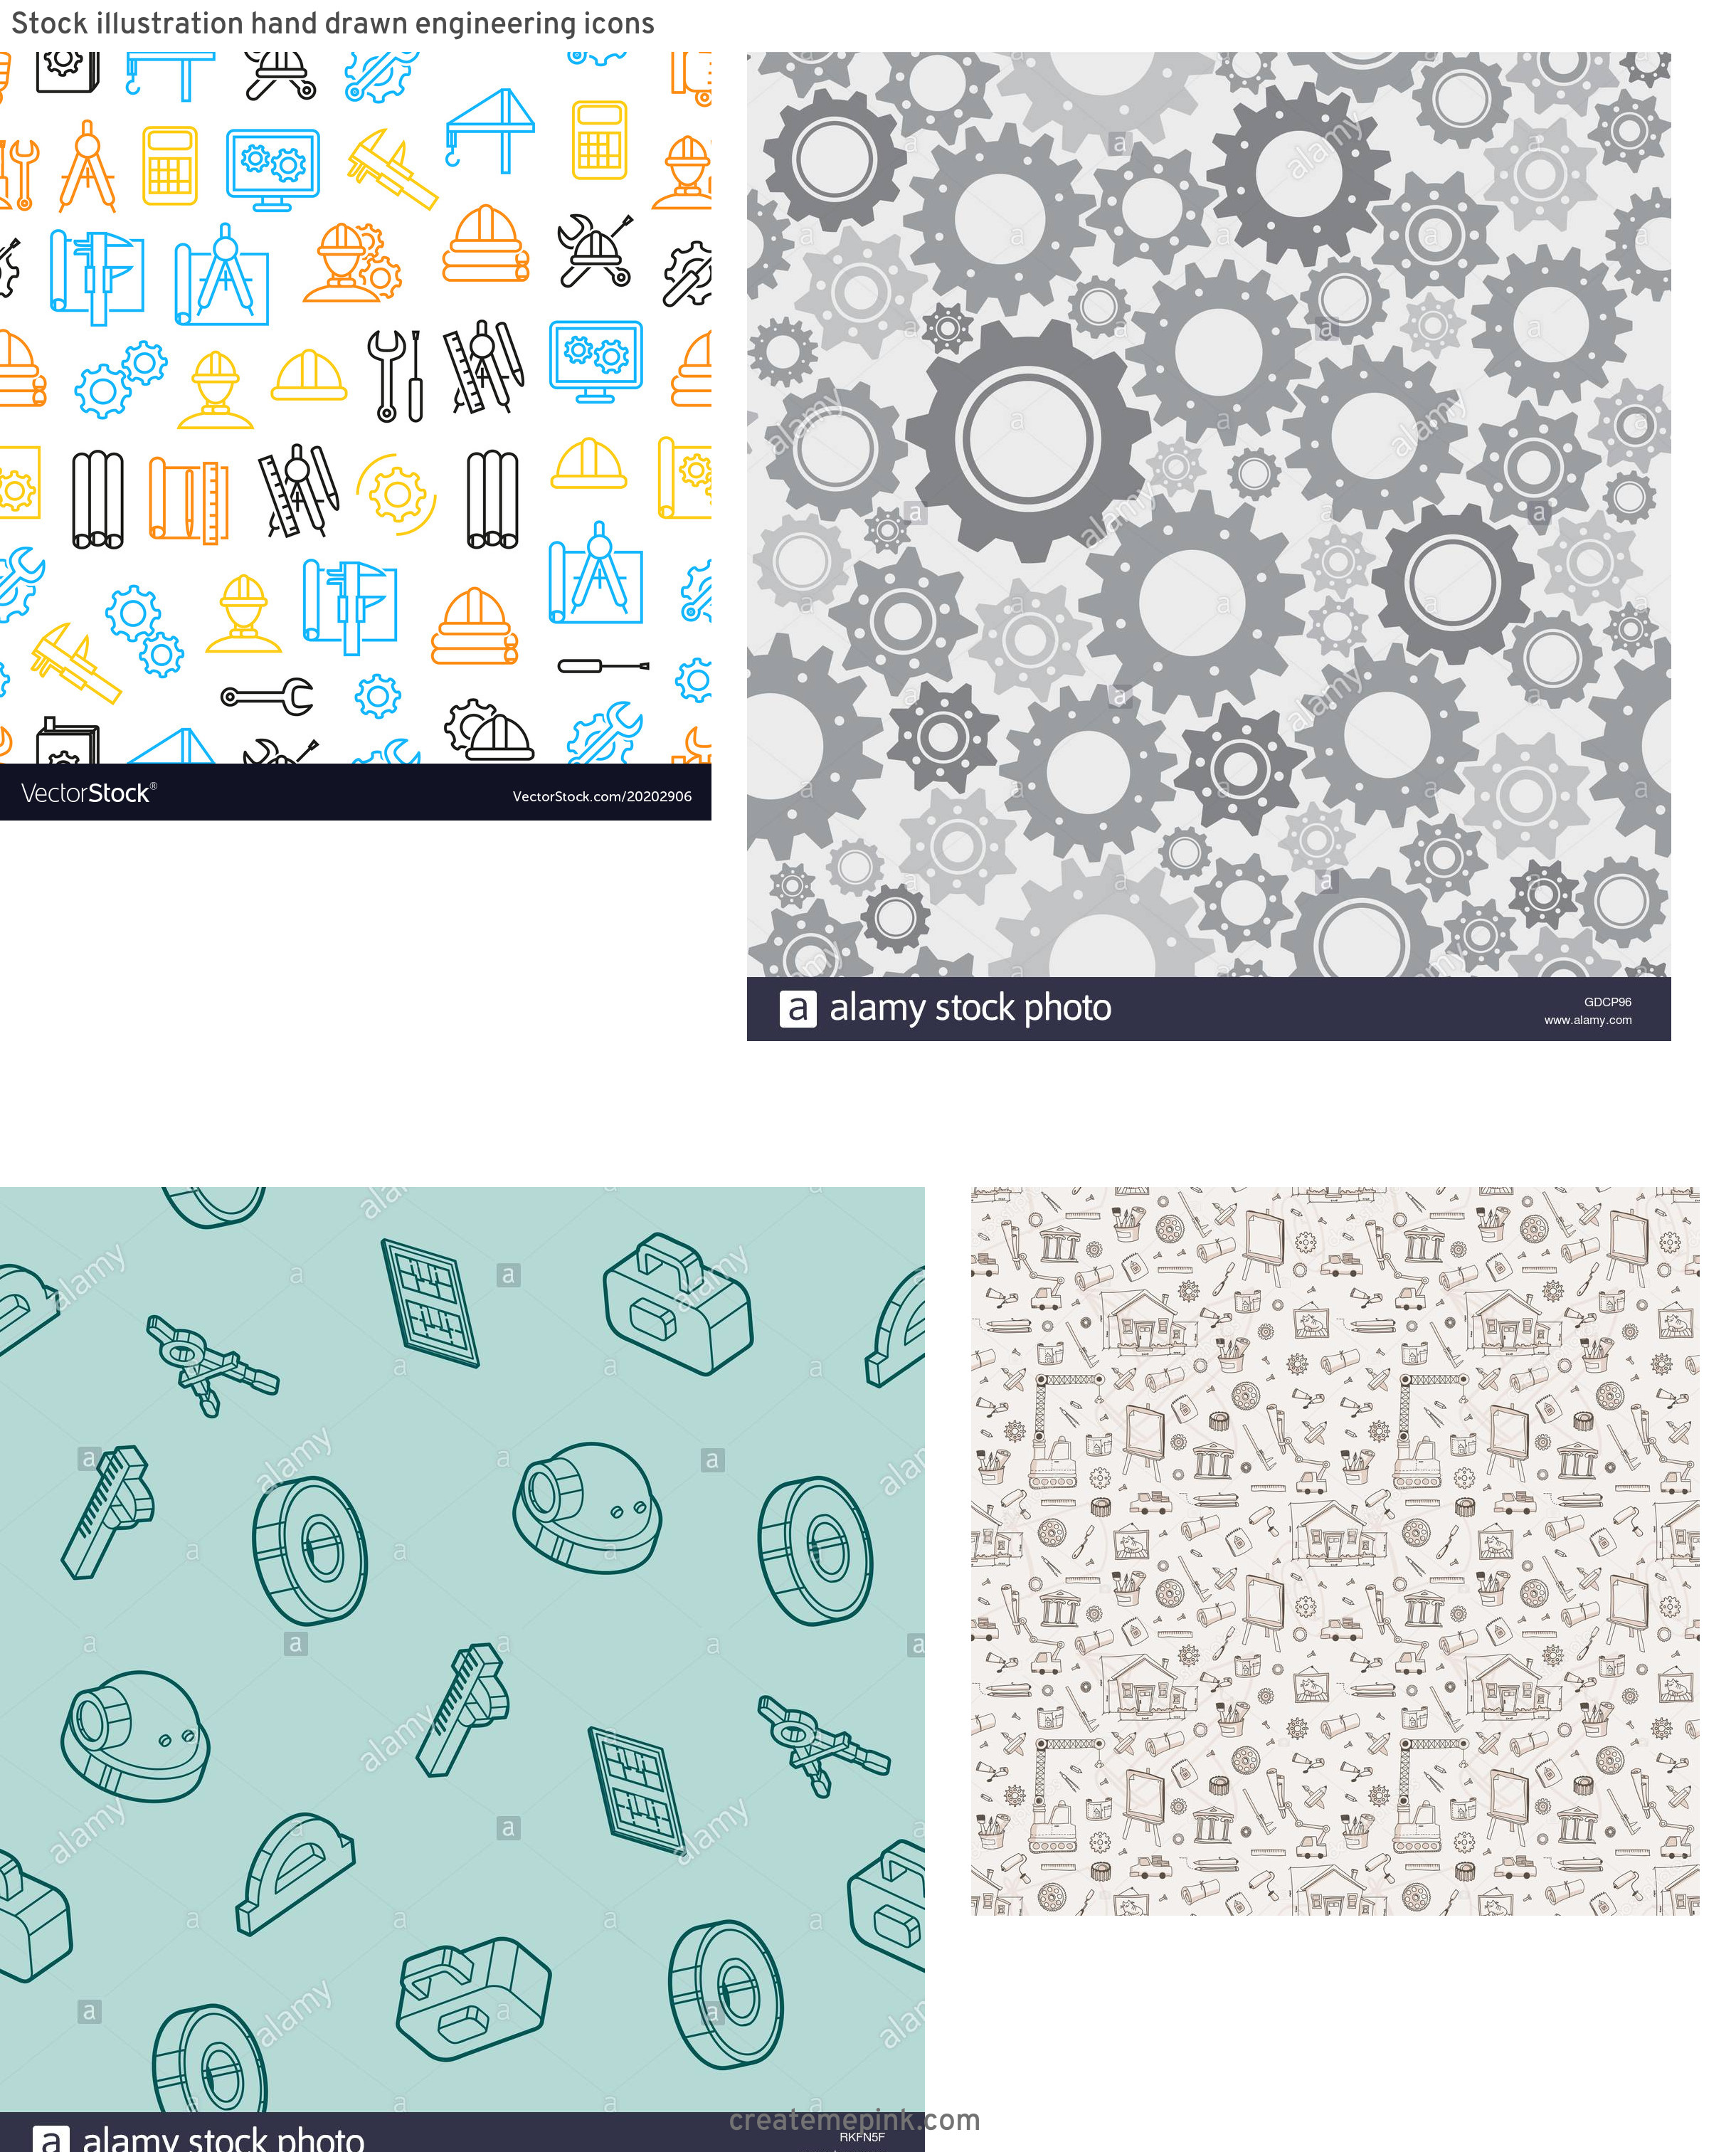 Engineering Vector Pattern: Stock Illustration Hand Drawn Engineering Icons